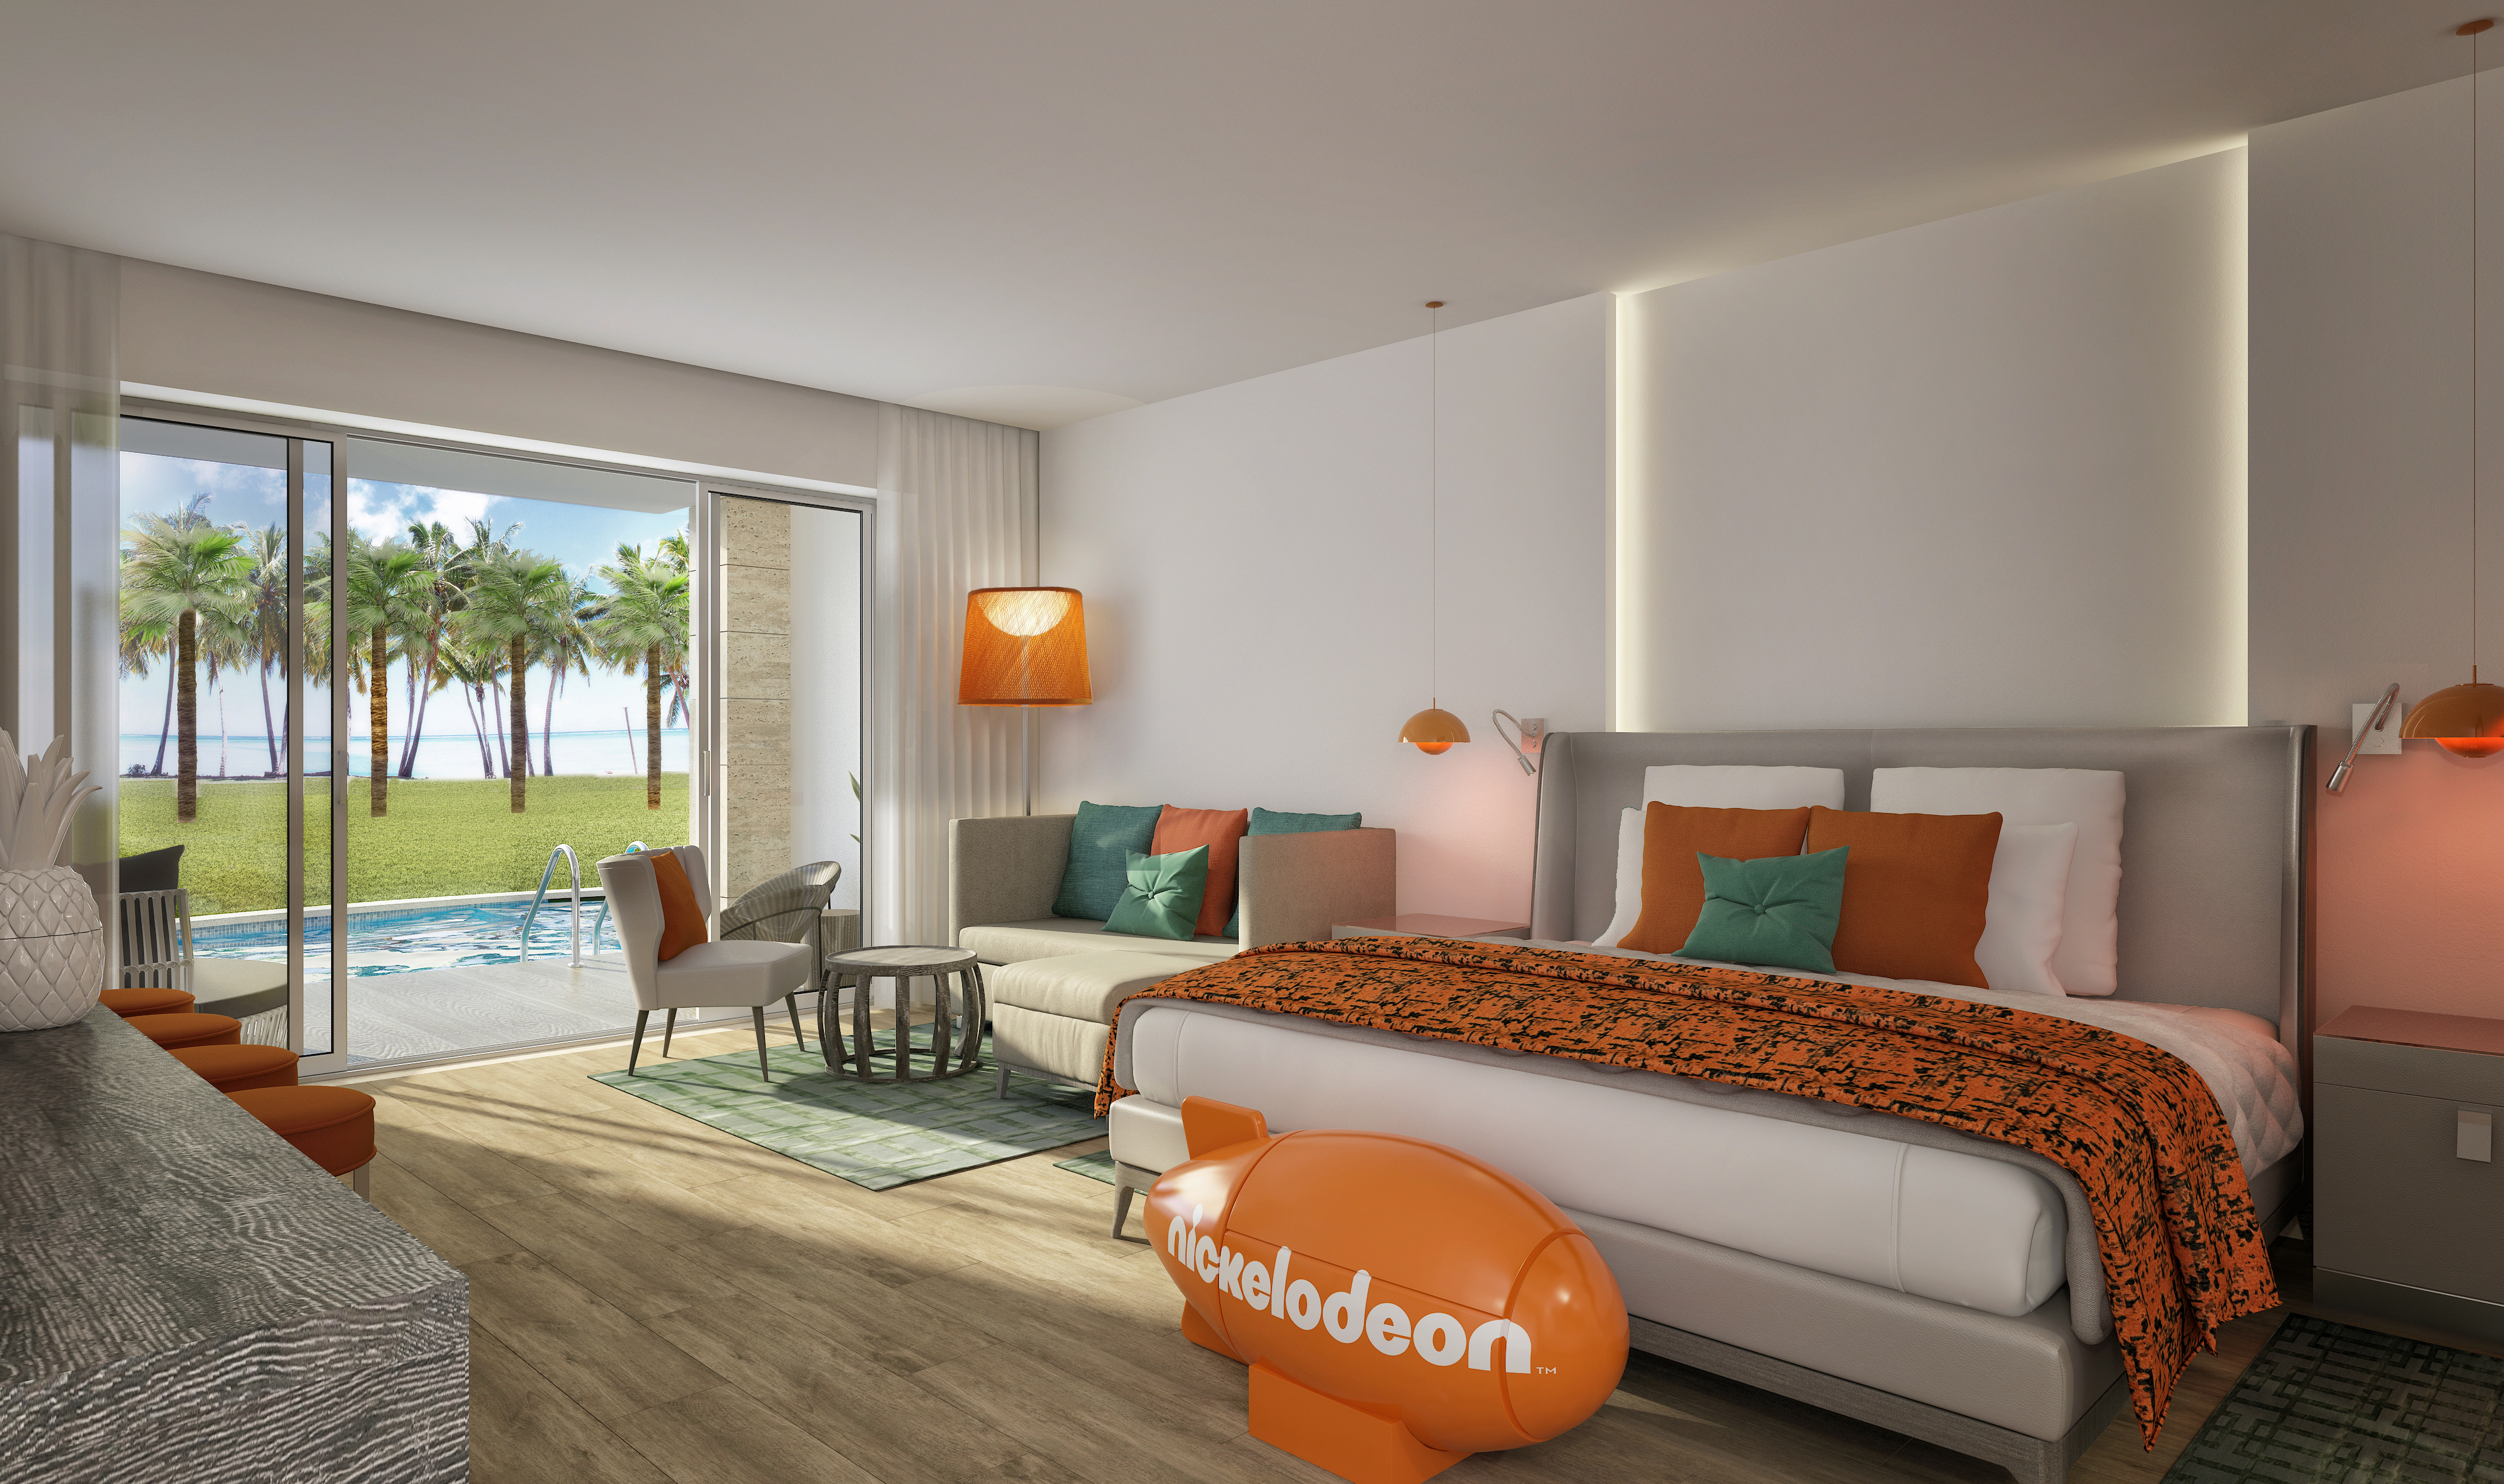 Gentil Nickelodeon Hotels U0026 Resorts Punta Cana Joins RCI, Offering Family  Vacations With A Bit Of Character